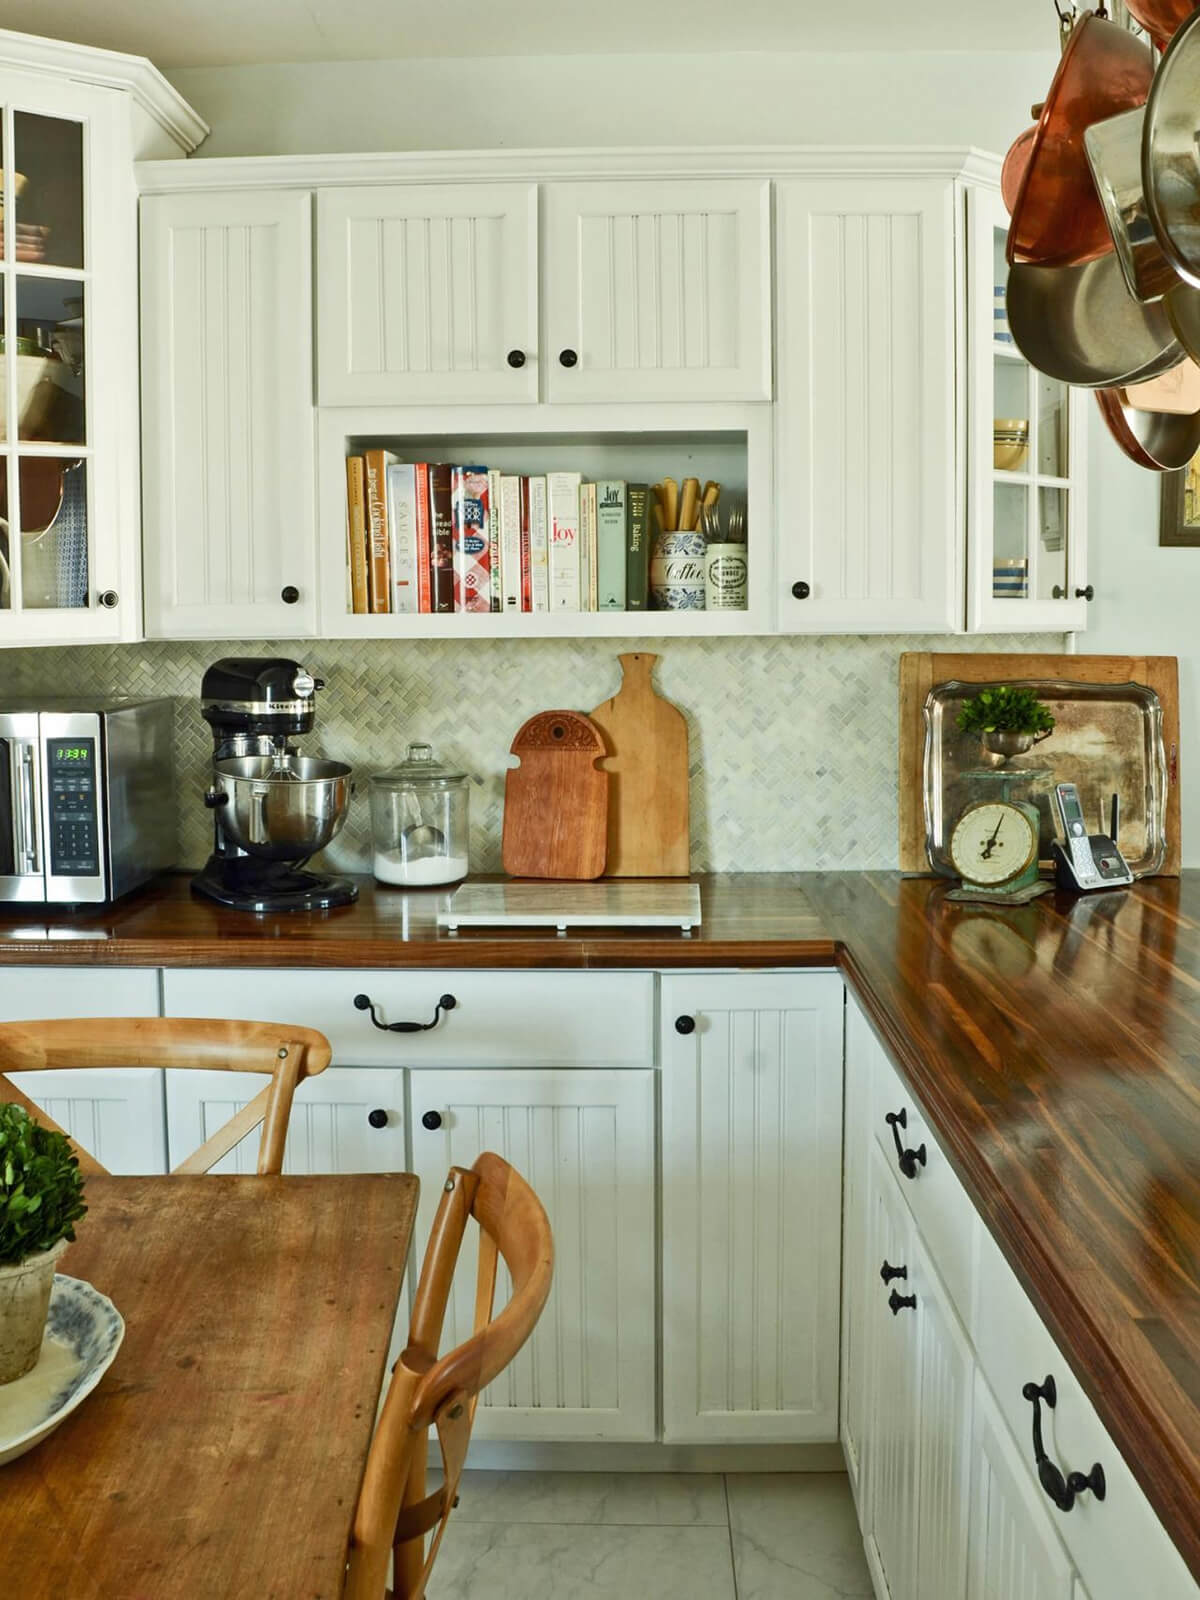 Paneled Cabinet with White and Black